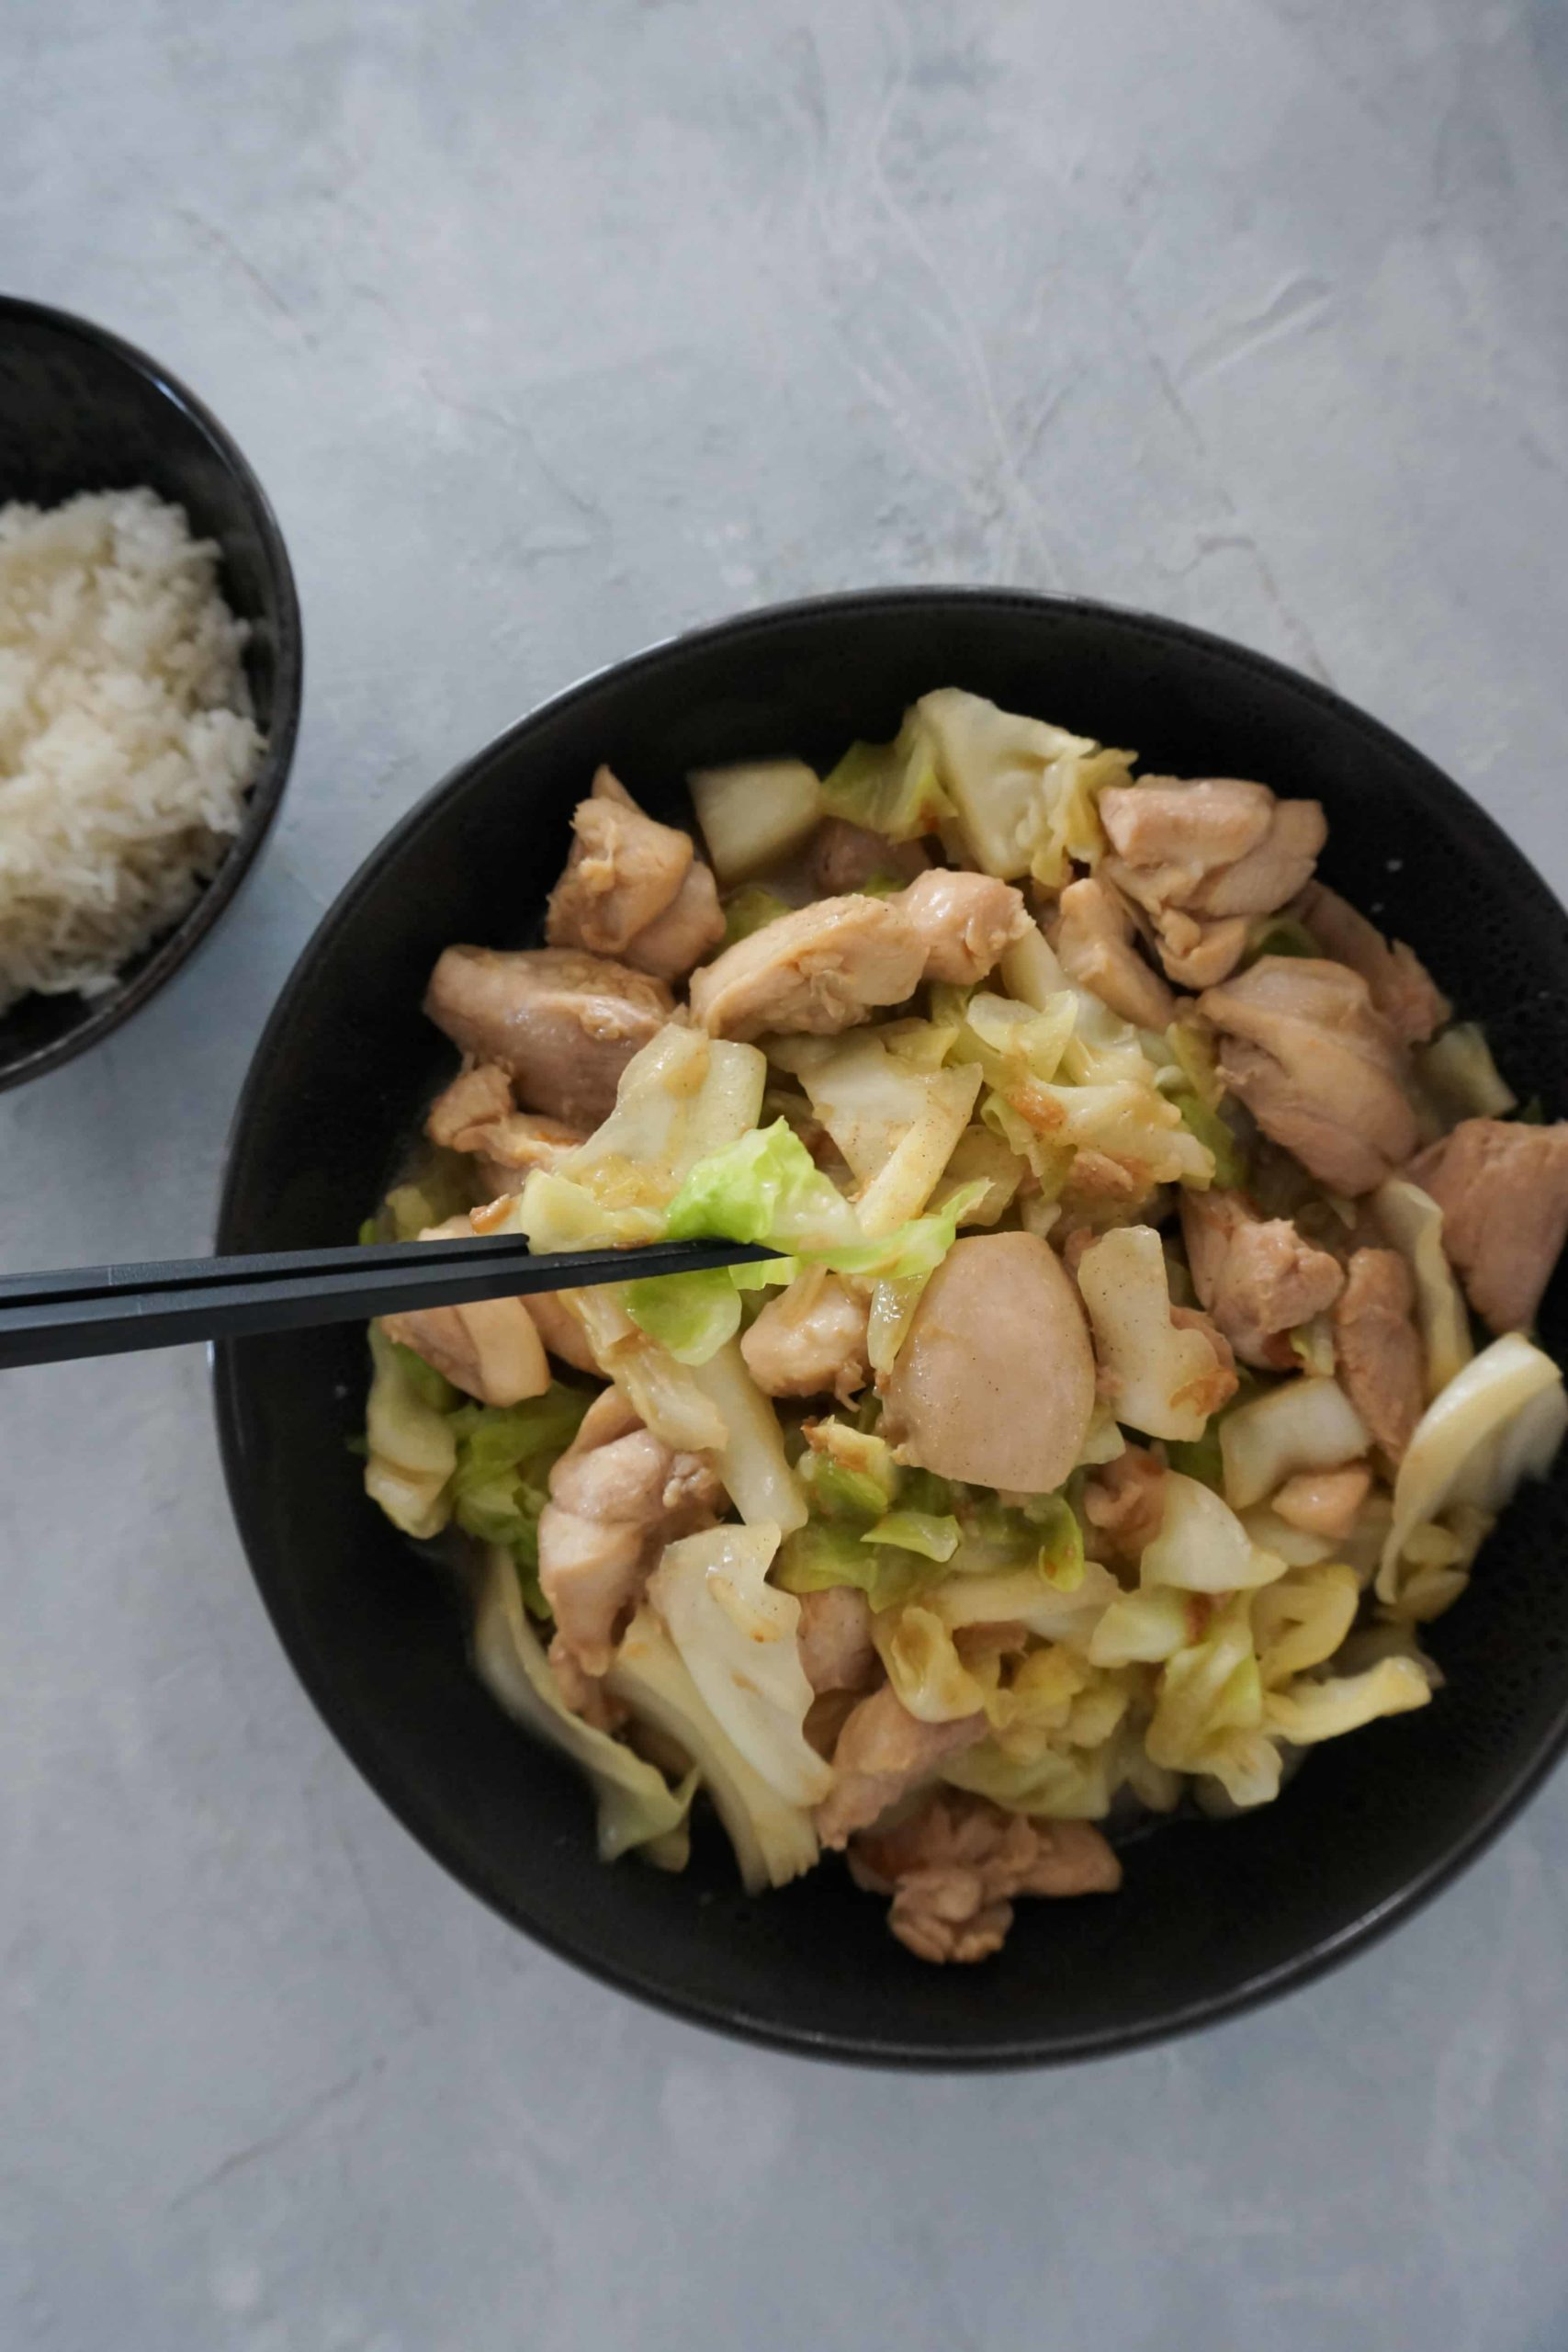 chopsticks lifting cabbage out of a plate full of chicken and cabbage stir-fry